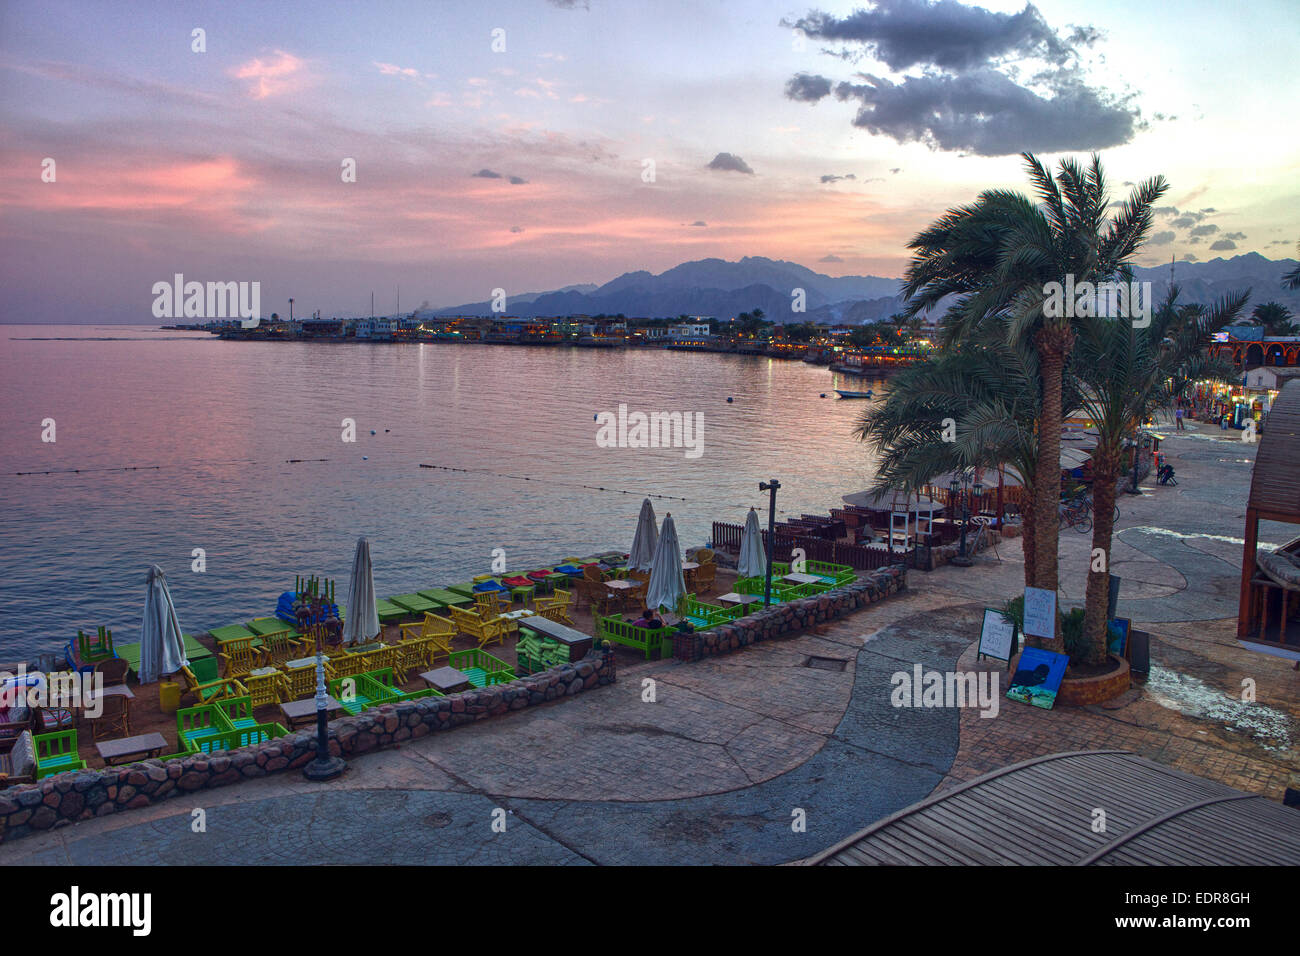 Once an Oasis on the Red Sea, this is Dahab, a fine diving destination. - Stock Image